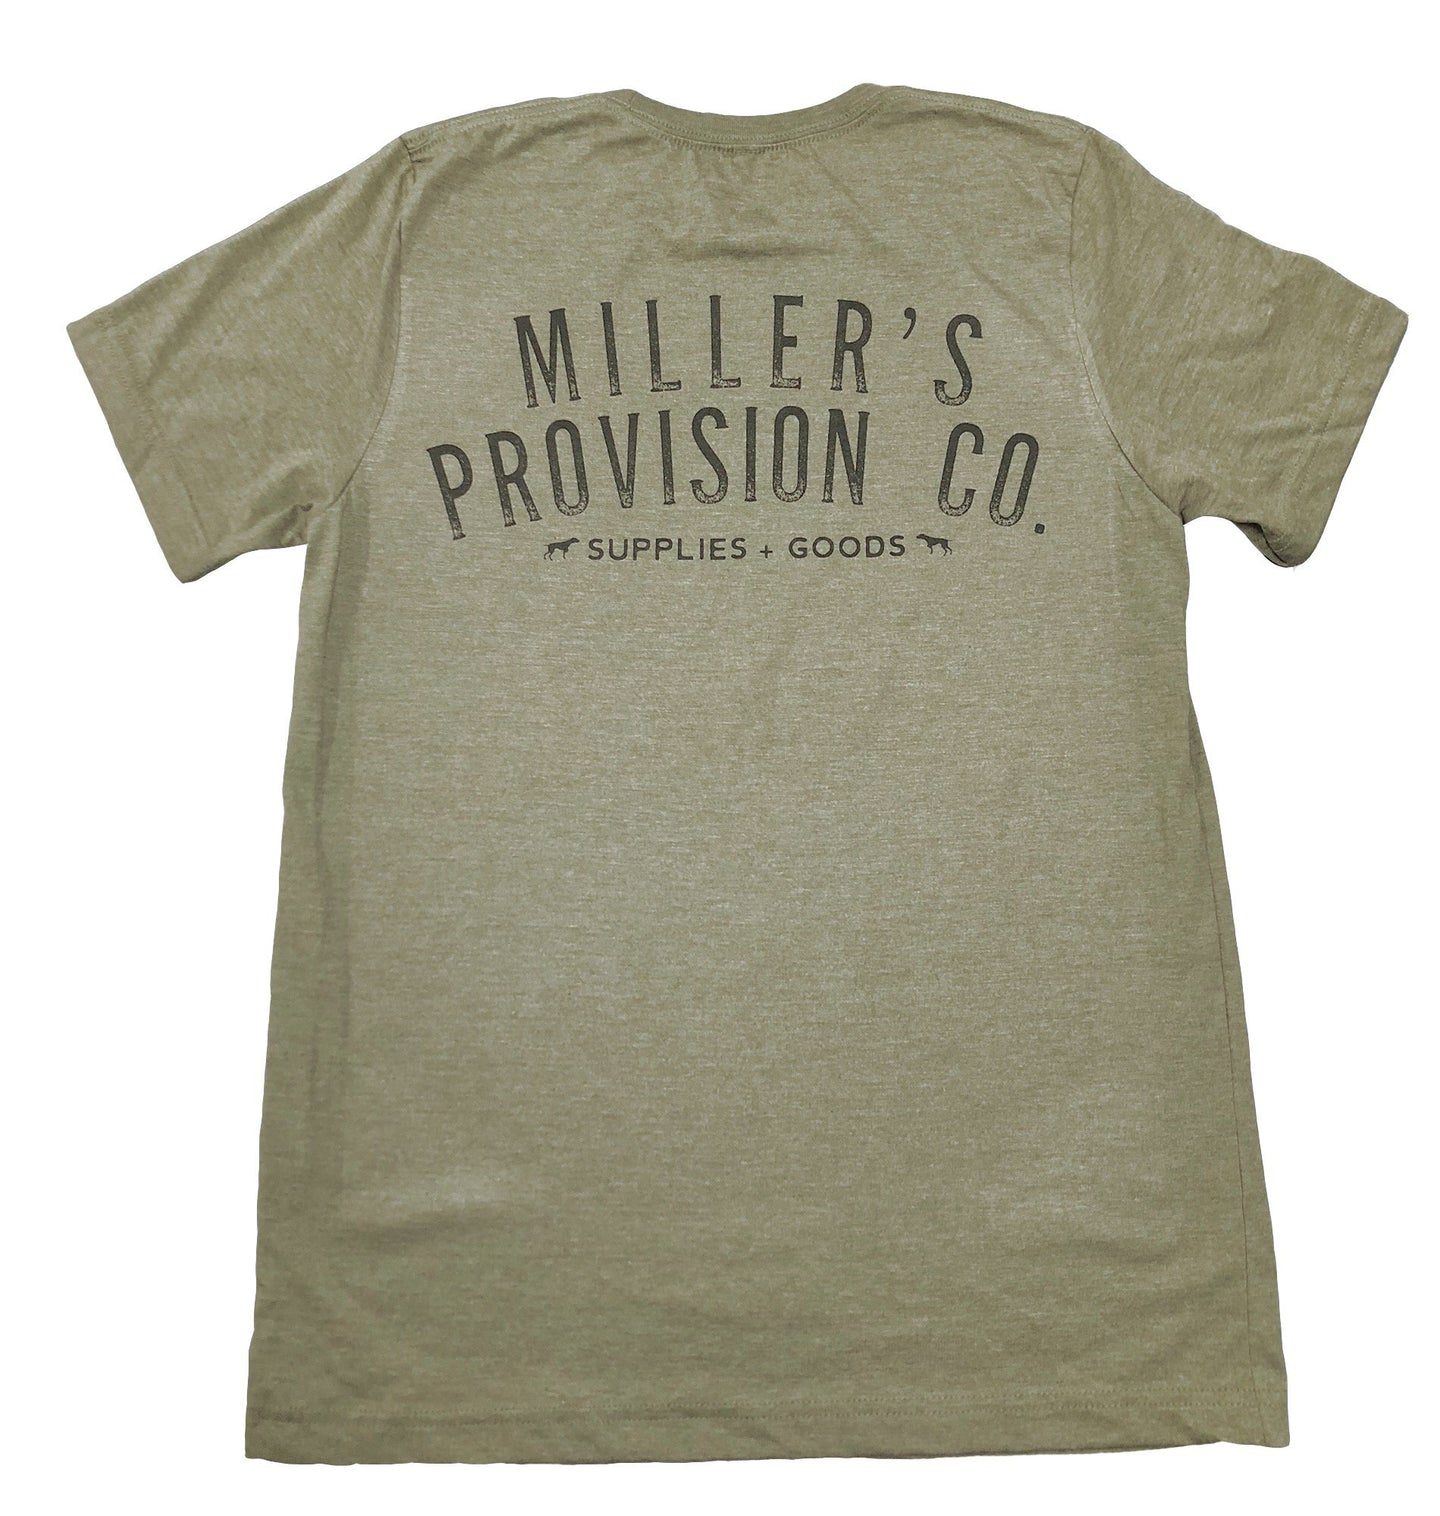 Miller's Provision Co. MEN - SHIRTS - SHORT SLEEVE T-SHIRTS Miller's Provision Co., Original Logo T-Shirt, Army Green